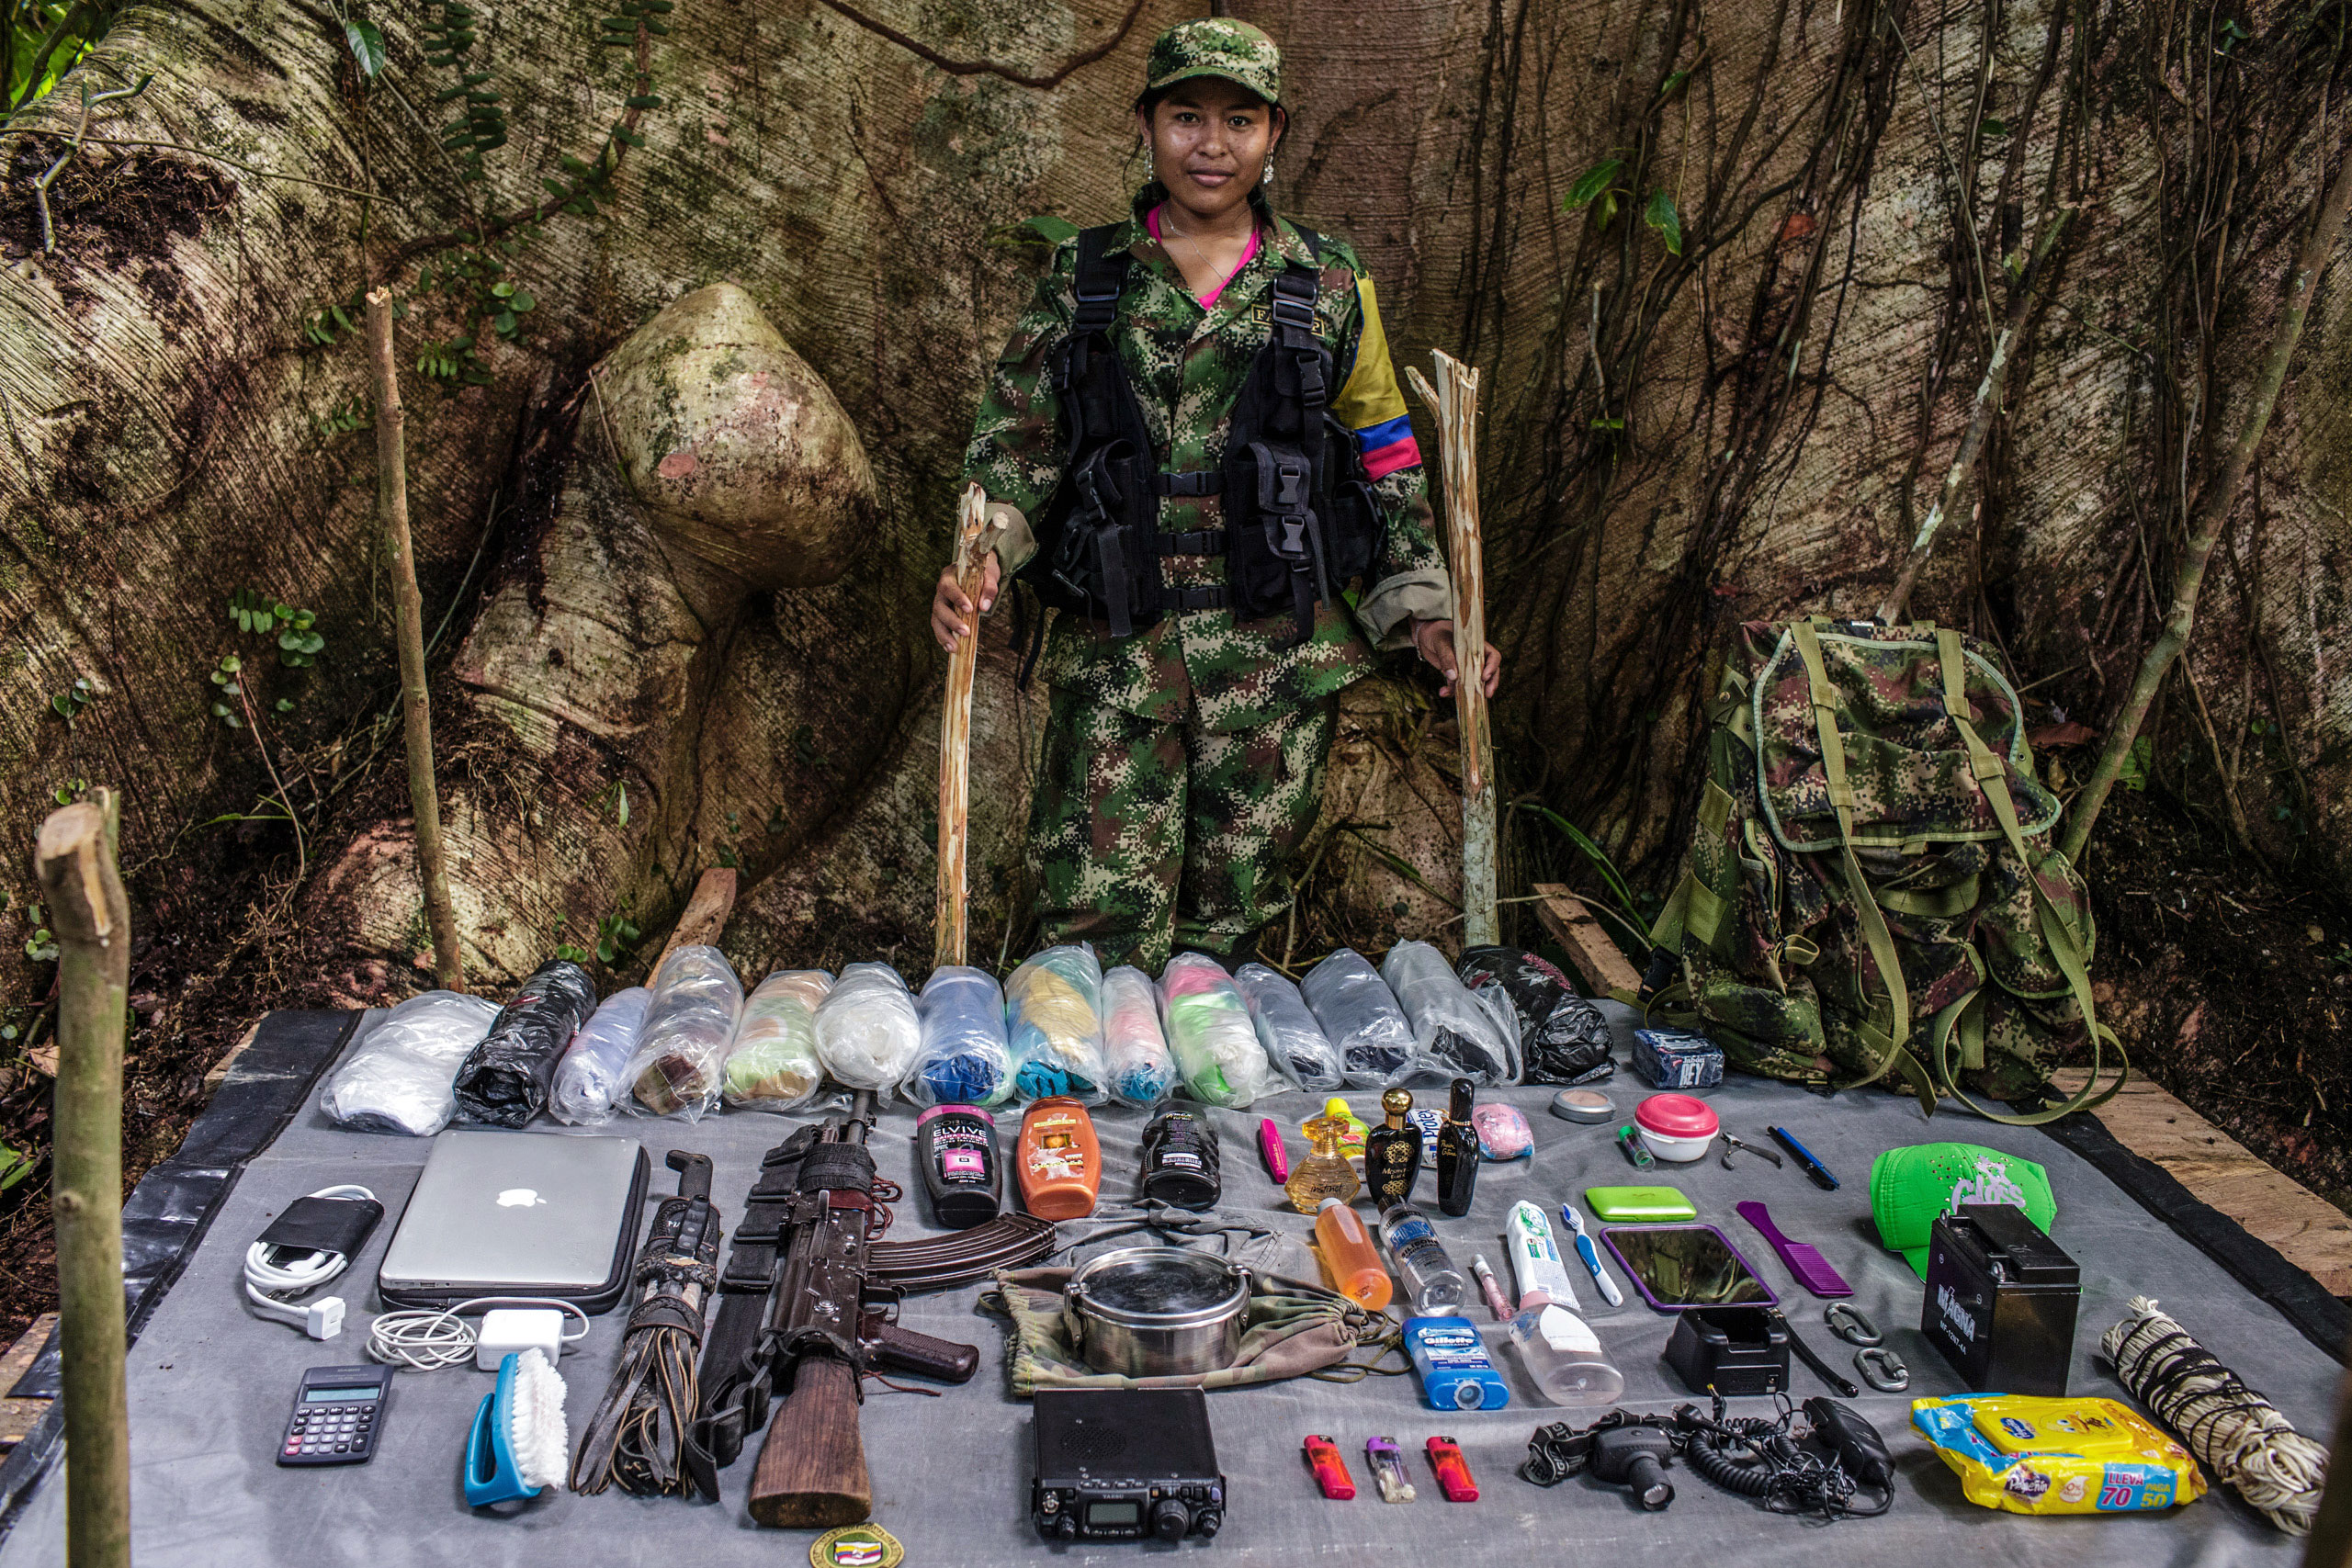 Marcela , 18-years old,  has been with FARC for two years.                                She is from an indigenous community that was attacked by a paramilitaries, and afterward she jointed FARC.  As a  radio operator, she carries a lot of gear for the group, including a laptop, radio, and batteries.